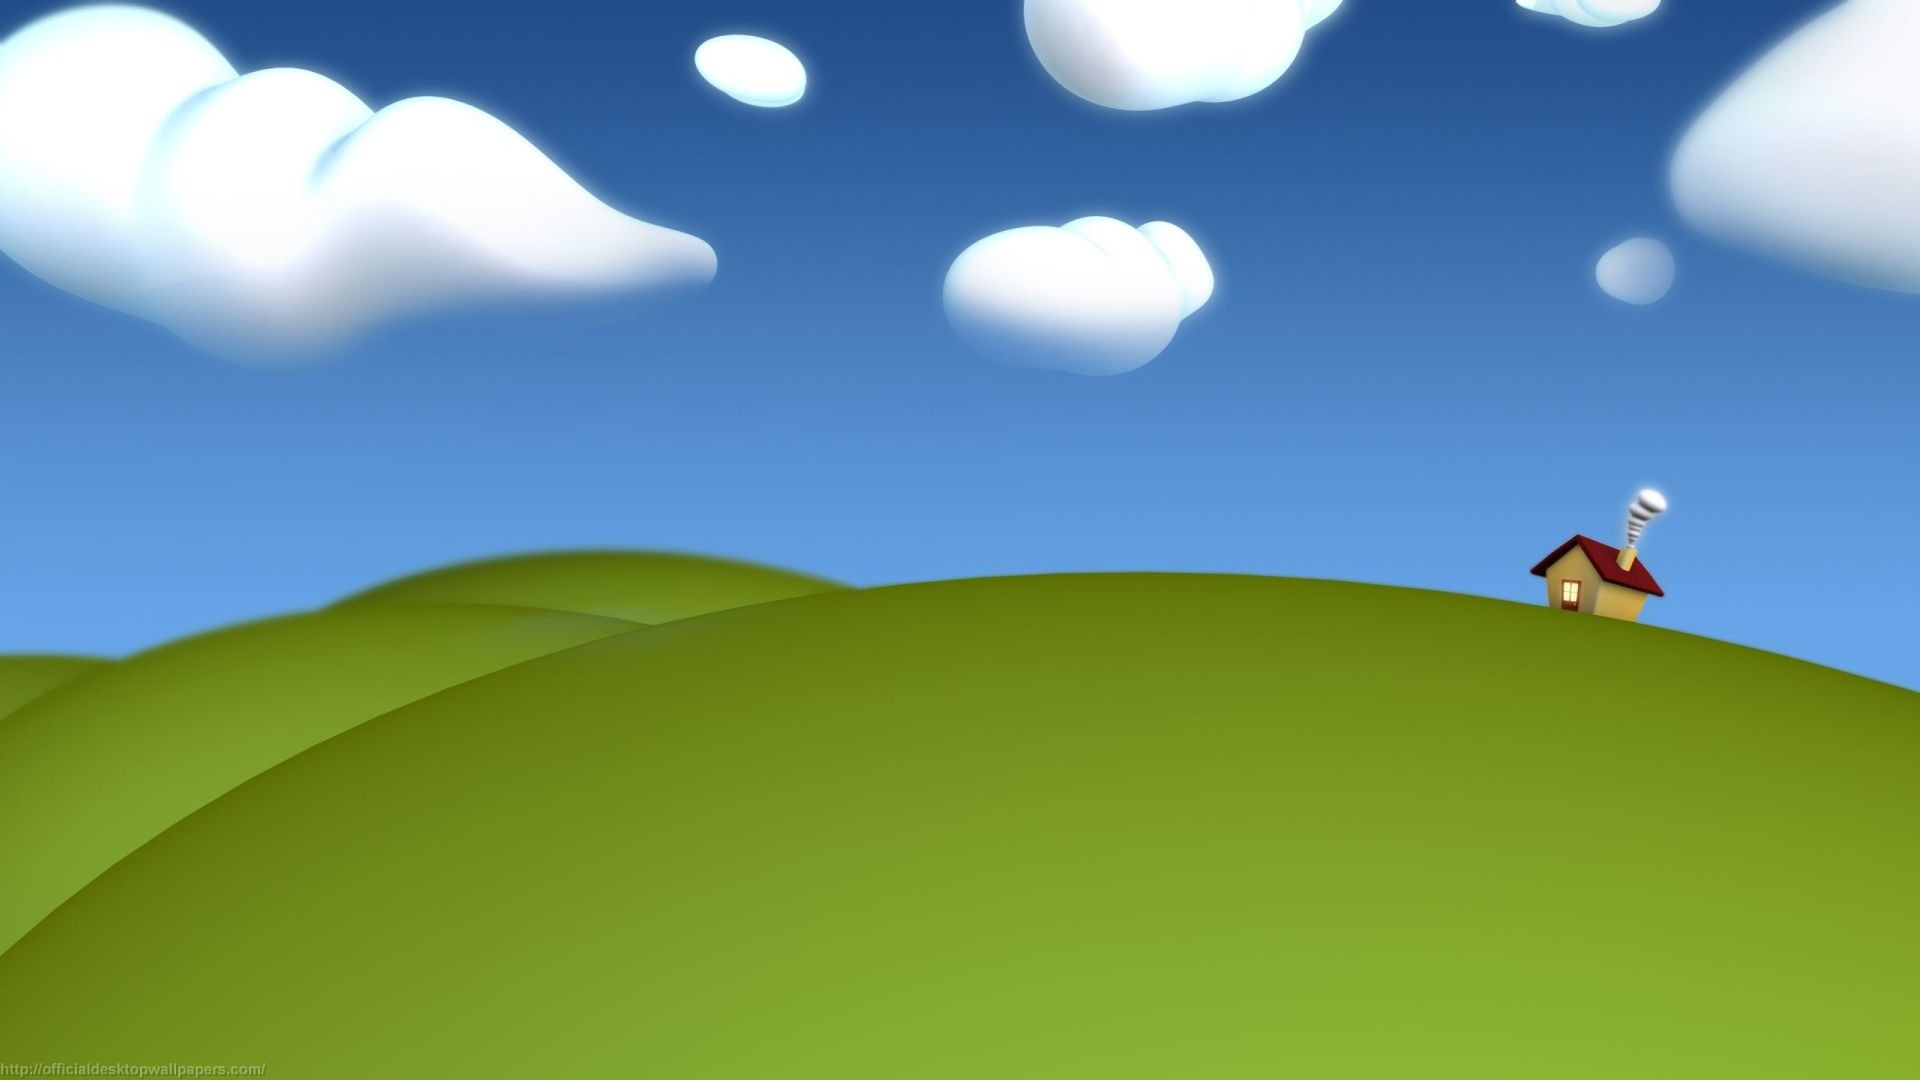 1920x1080 Park Background Clipart HD Photos Gallery